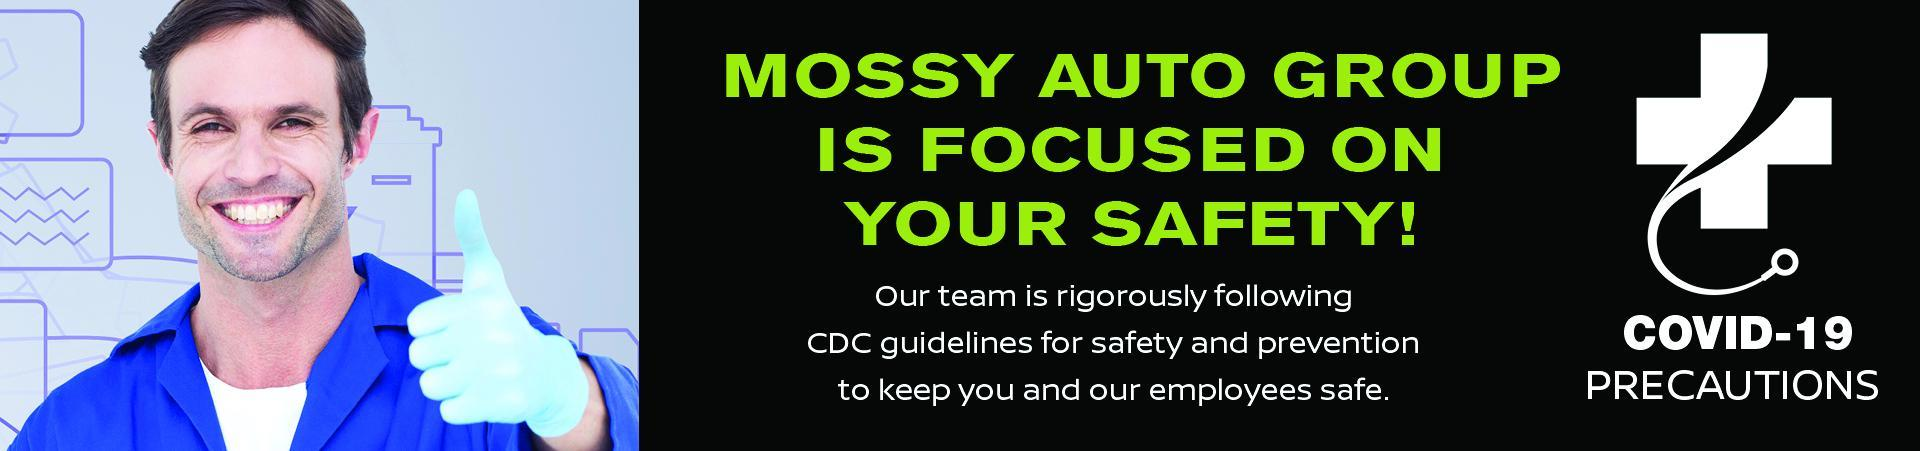 Focused on Your Safety | Mossy Auto Group